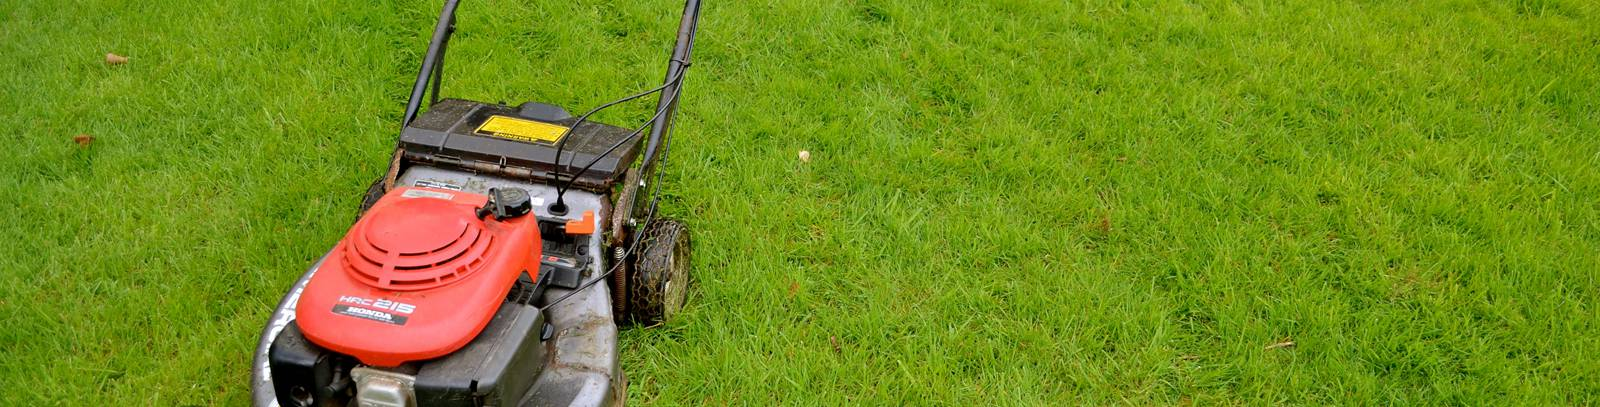 Fertilization and weed control thompson landscape for Lawn mowing and gardening services